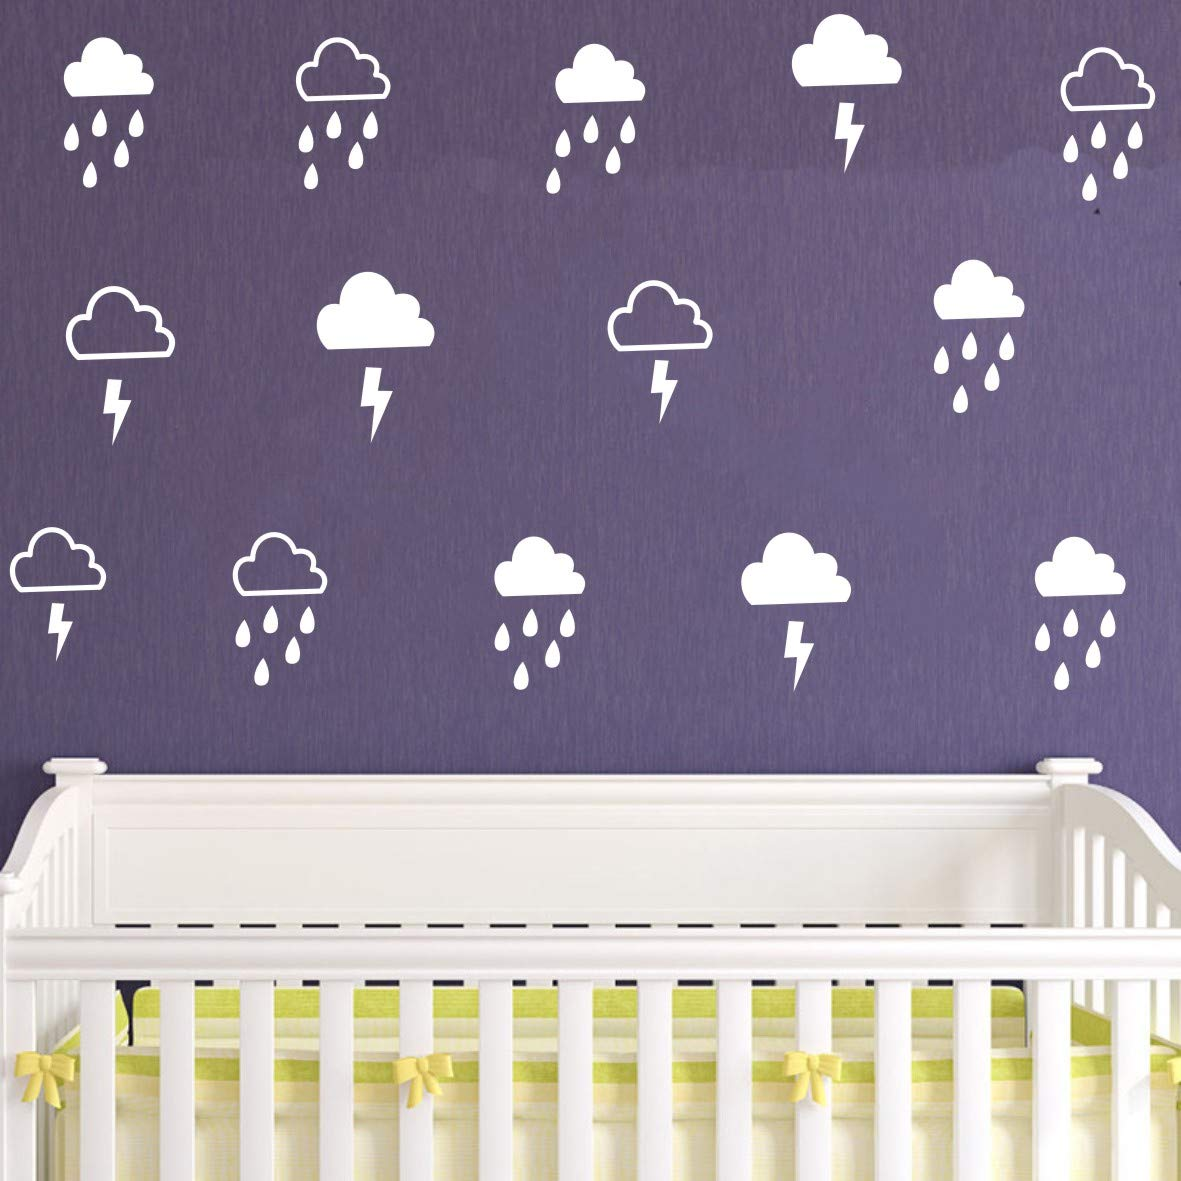 Kids Room Decor Wall Sticker Clouds Raindrop and Lightning Decor Wall Stickers Nursery Room Bedroom Decoration Wall Mural (White About 8x13cm Total 40 Sets)